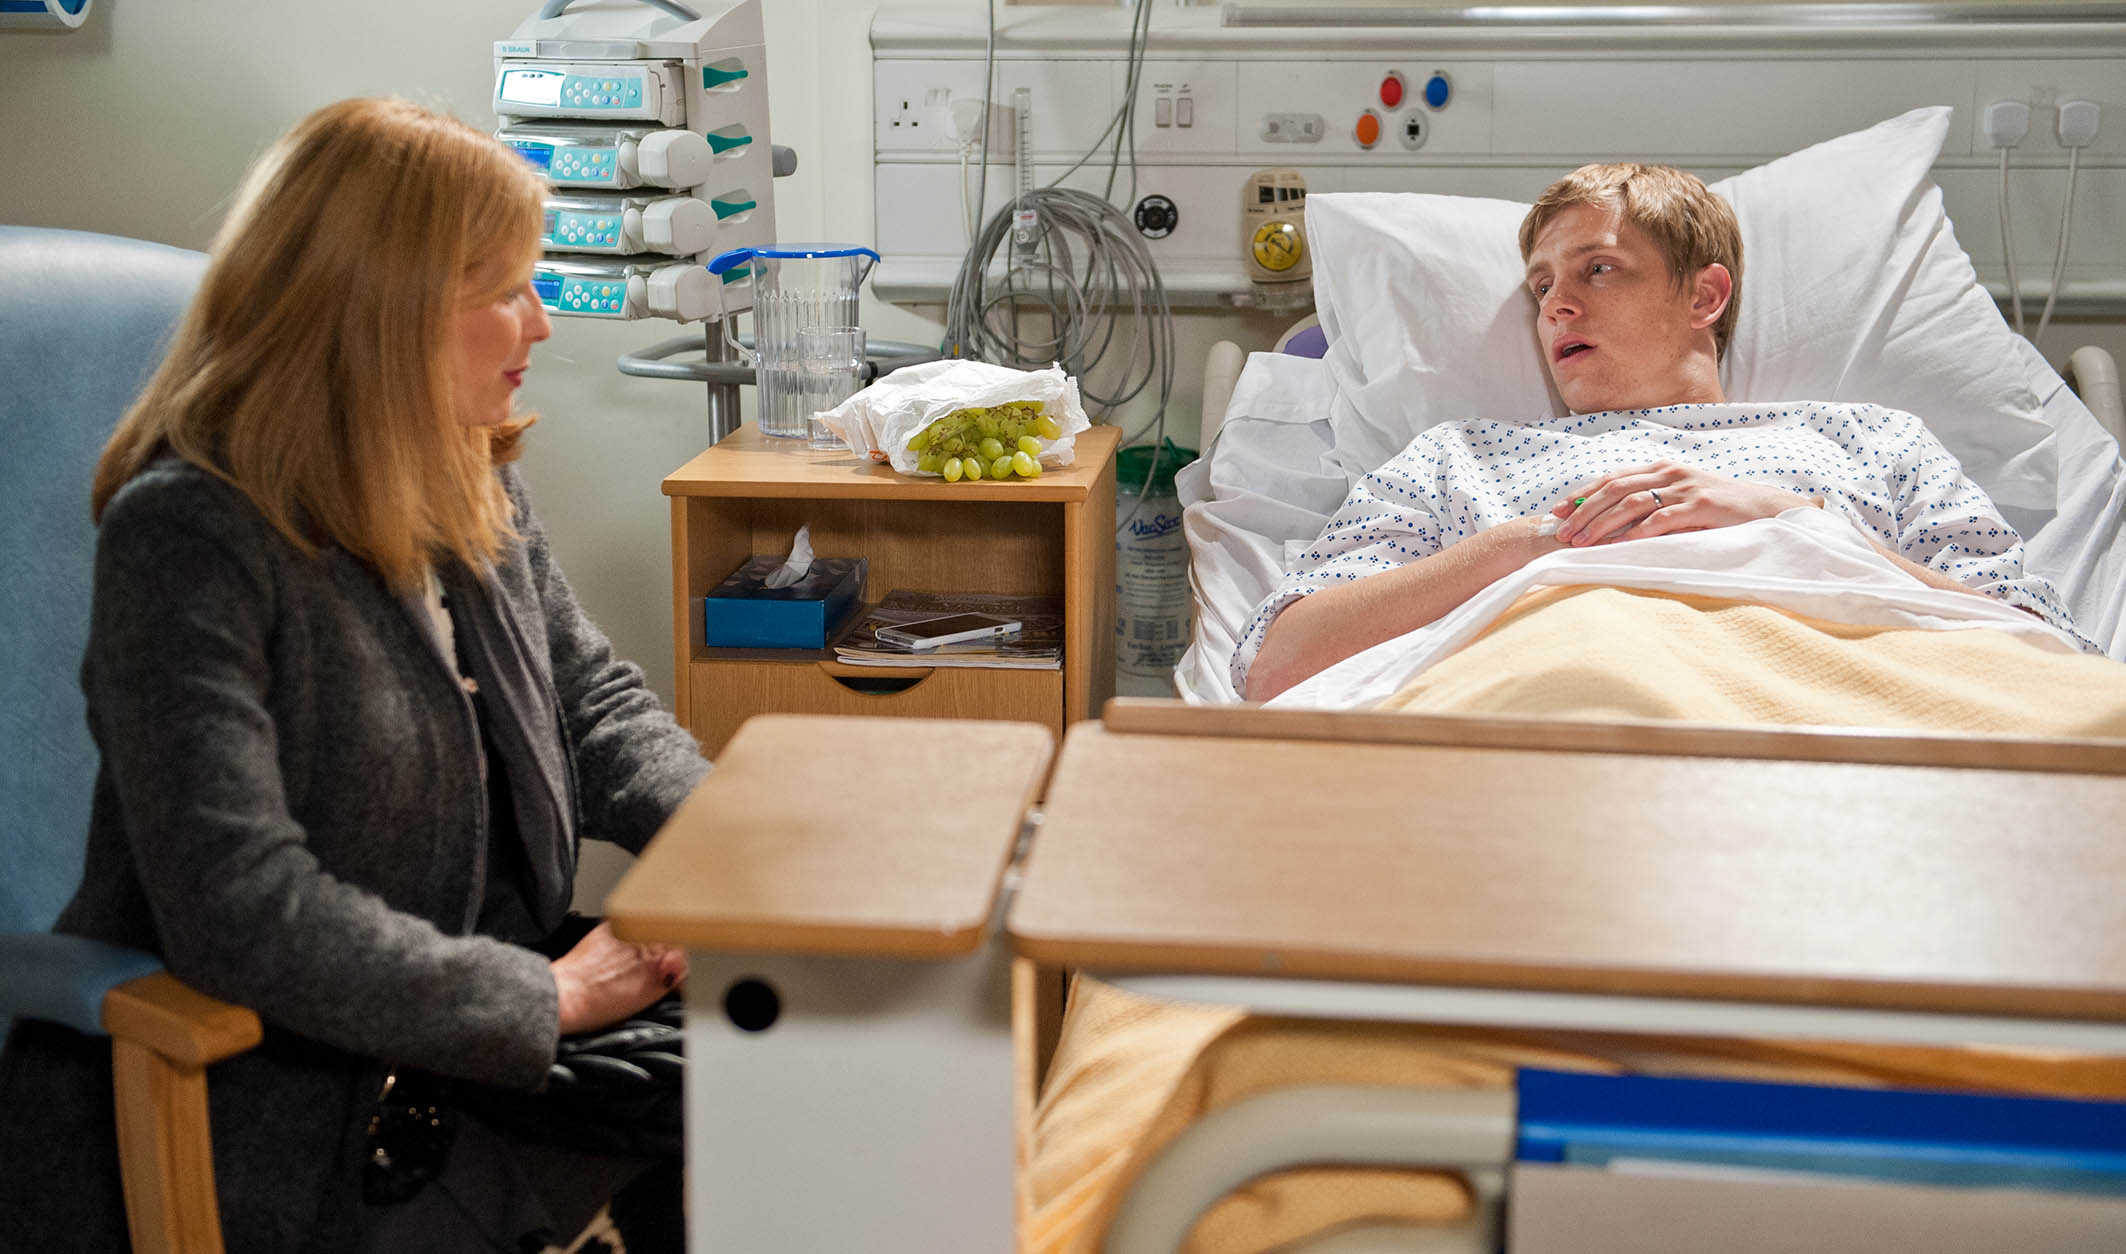 FROM ITV STRICT EMBARGO - No Use Before Tuesday 20 October 2015 Emmerdale - Ep 7329 Monday 26 October 2015 Robert Sugden's [RYAN HAWLEY] interest is piqued when he hears Bernice Thomas [SAMANTHA GILES] has moved into Home Farm, knowing it could be useful to him. Bernice is thrown to learn she will have a separate room from Lawrence and tries to cover her disappointment. She covers when she gets a message from Robert asking her to visit him and he warns her the Whites are a dangerous family. He wants her to keep an eye on them... Picture contact: david.crook@itv.com on 0161 952 6214 Photographer - Amy Brammall This photograph is (C) ITV Plc and can only be reproduced for editorial purposes directly in connection with the programme or event mentioned above, or ITV plc. Once made available by ITV plc Picture Desk, this photograph can be reproduced once only up until the transmission [TX] date and no reproduction fee will be charged. Any subsequent usage may incur a fee. This photograph must not be manipulated [excluding basic cropping] in a manner which alters the visual appearance of the person photographed deemed detrimental or inappropriate by ITV plc Picture Desk. This photograph must not be syndicated to any other company, publication or website, or permanently archived, without the express written permission of ITV Plc Picture Desk. Full Terms and conditions are available on the website www.itvpictures.com